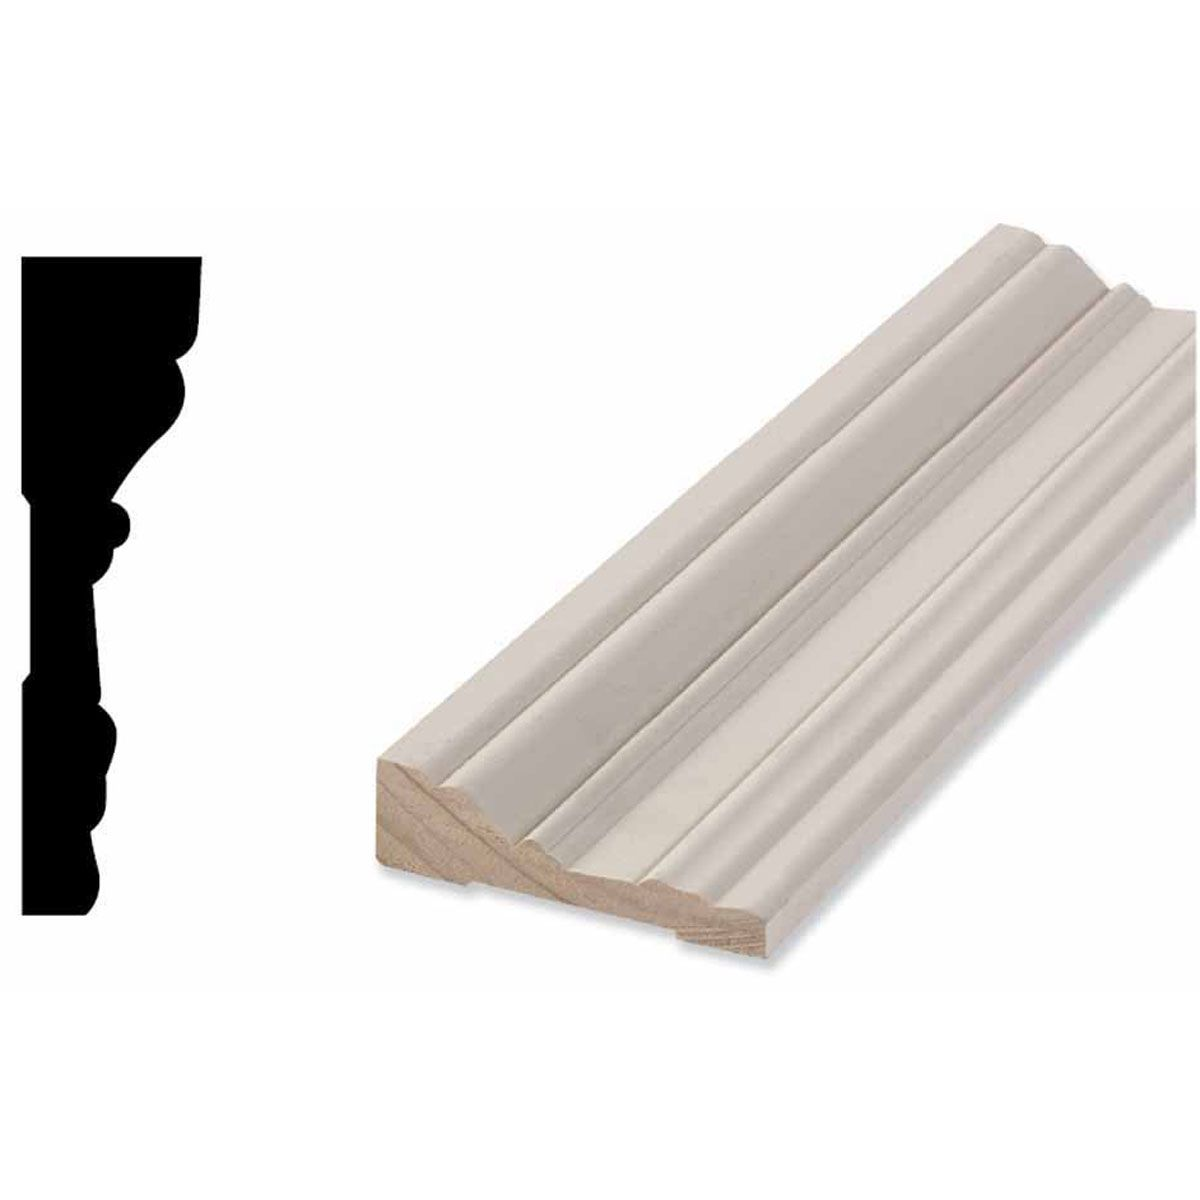 3 1 4 Inch H X 7 8 Inch P X 87 Inch L Casing Moulding Profile 1646 Primed Fingerjoint Pine Moulding Profiles Prime Inches